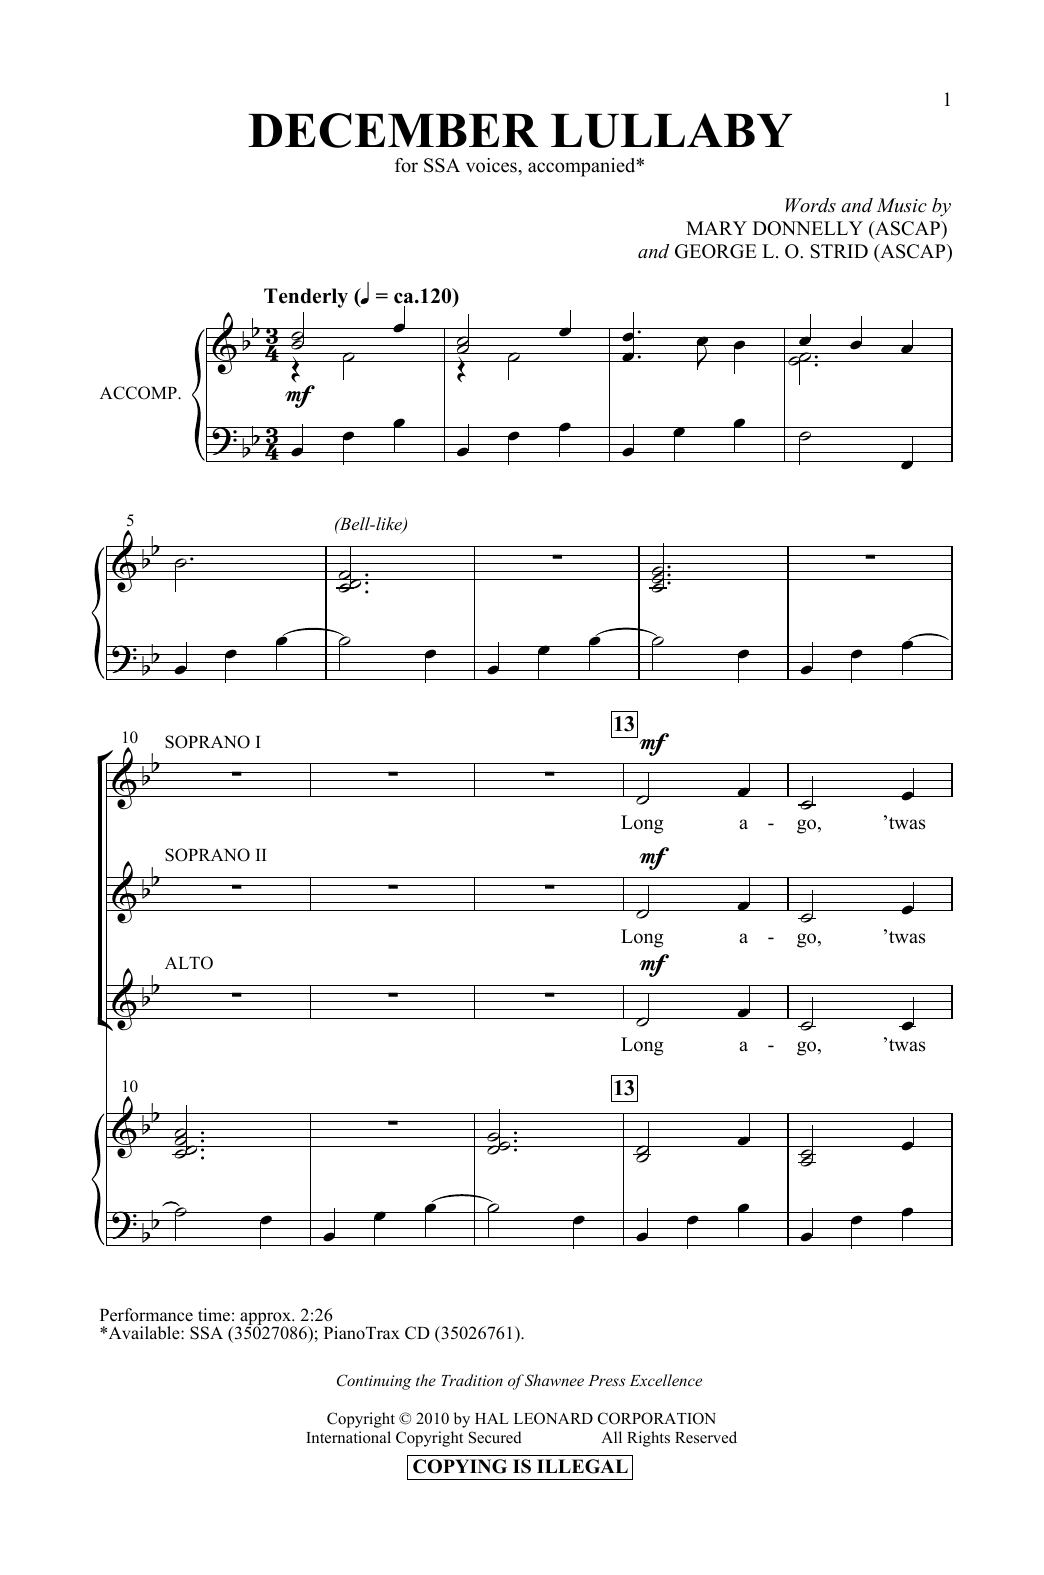 Mary Donnelly & George L.O. Strid December Lullaby sheet music notes printable PDF score